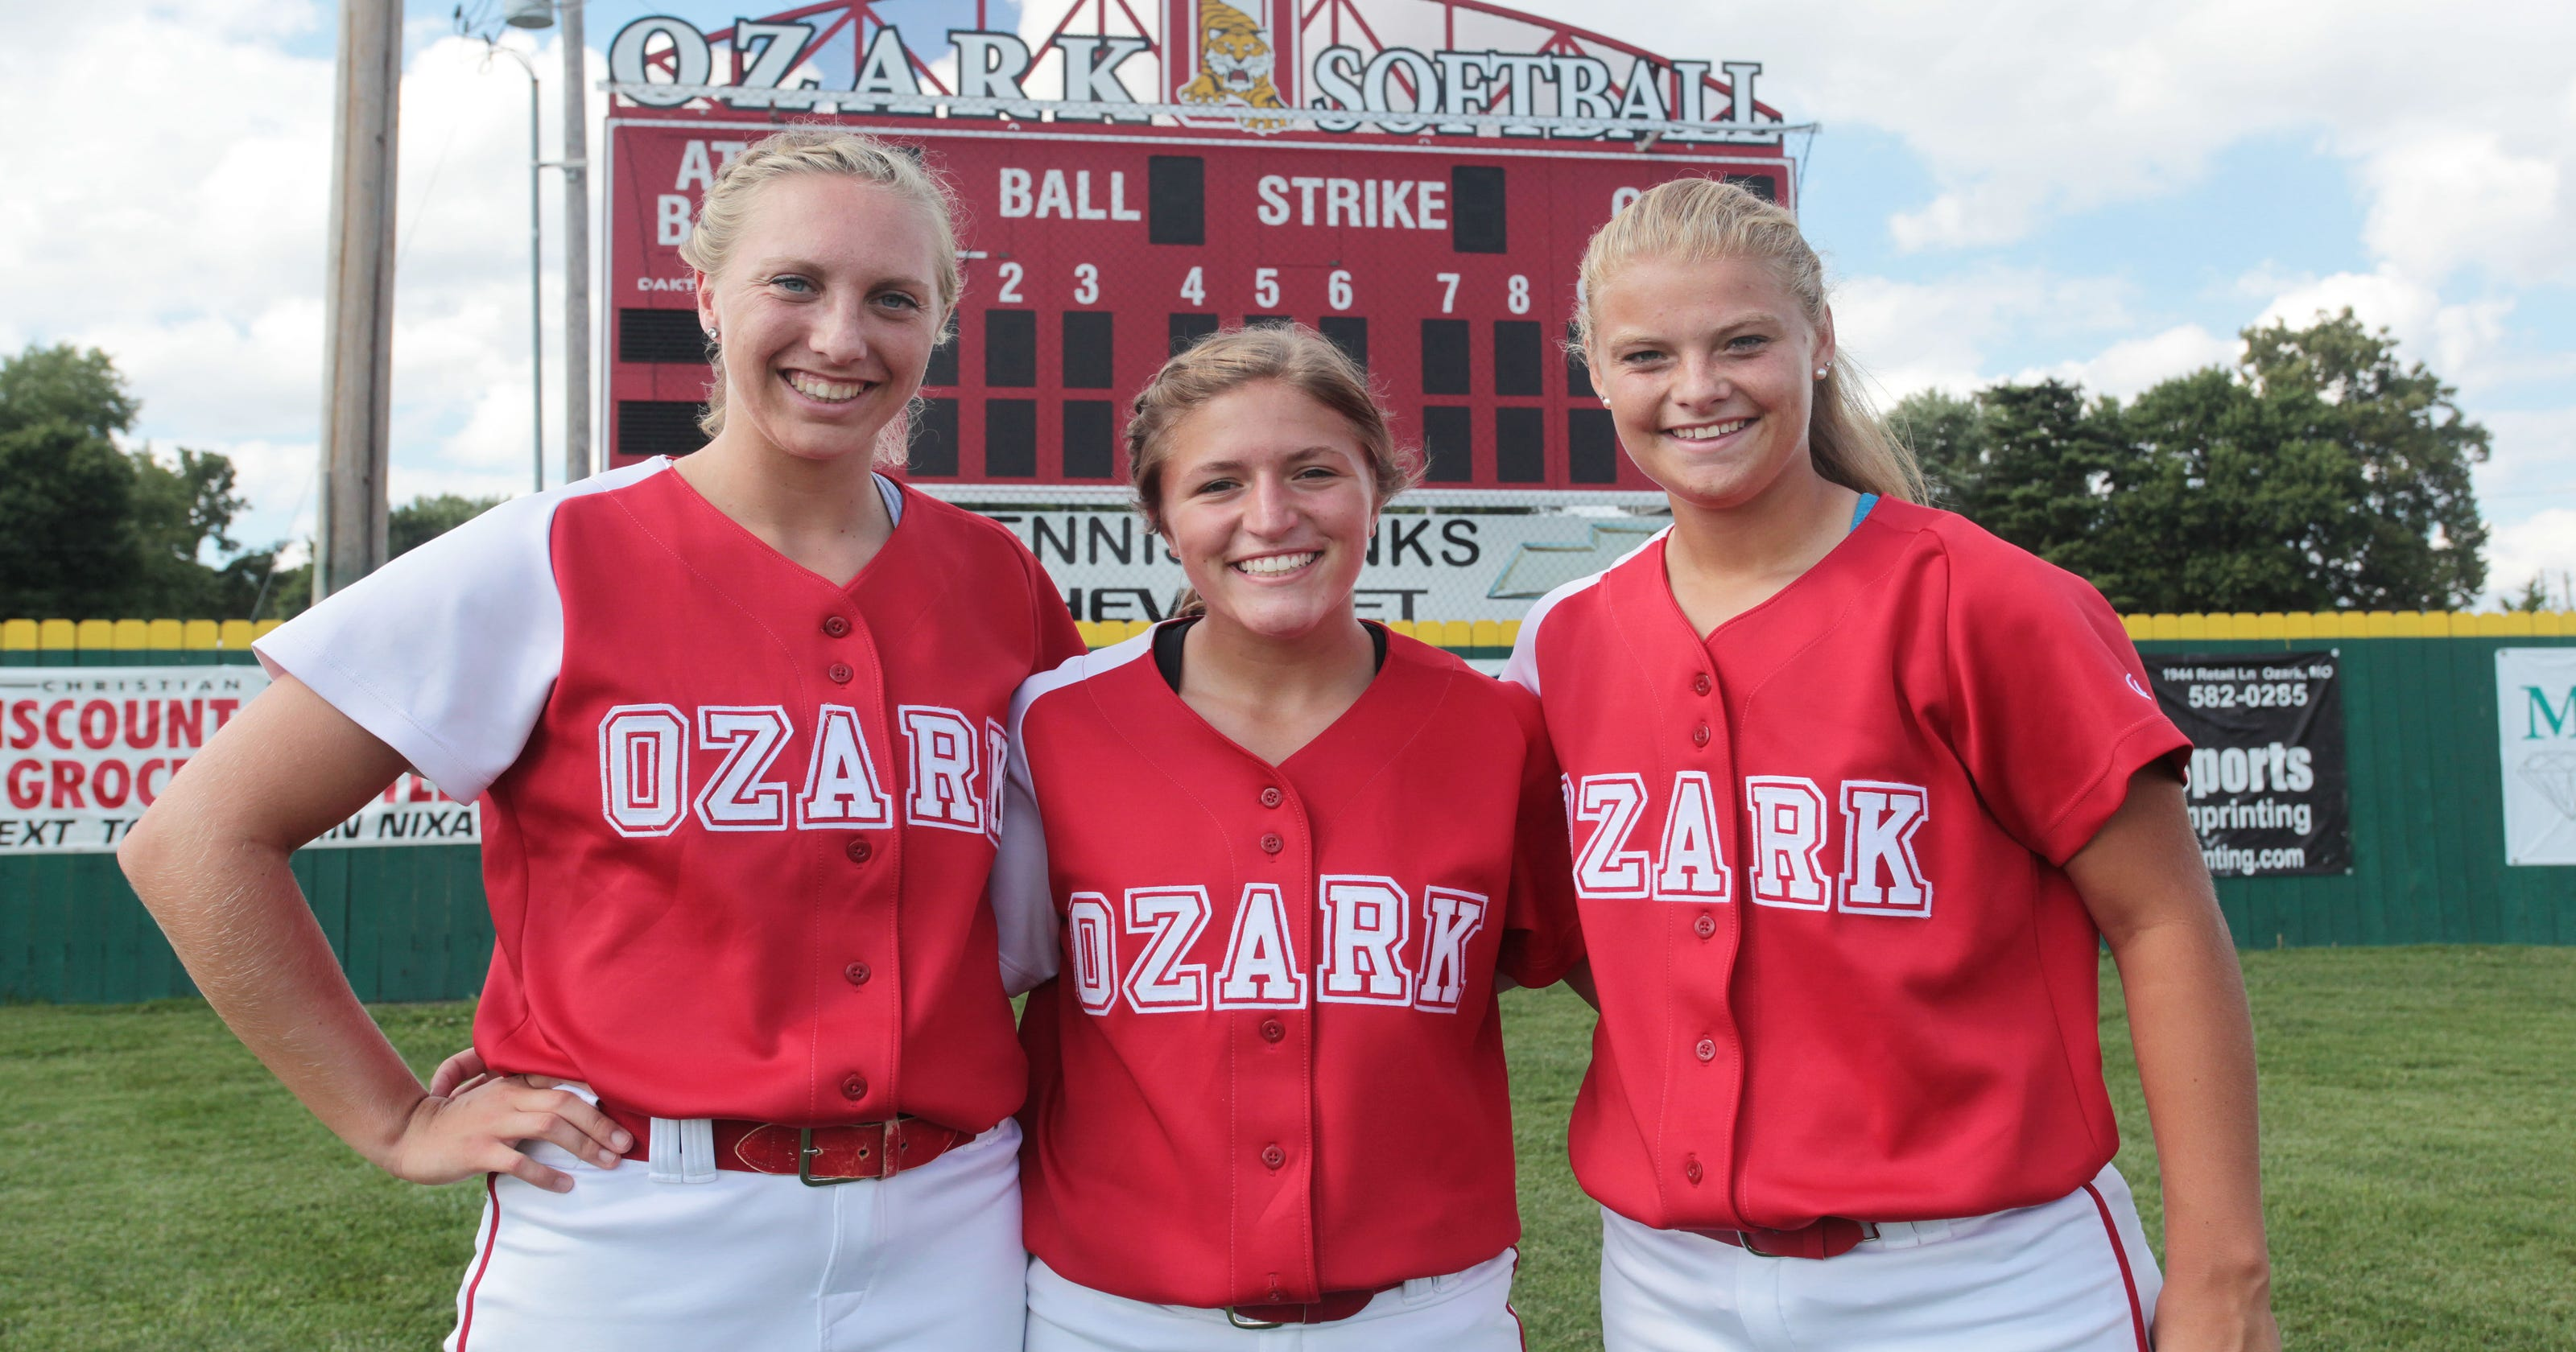 Softball in the Ozarks: Building on tradition